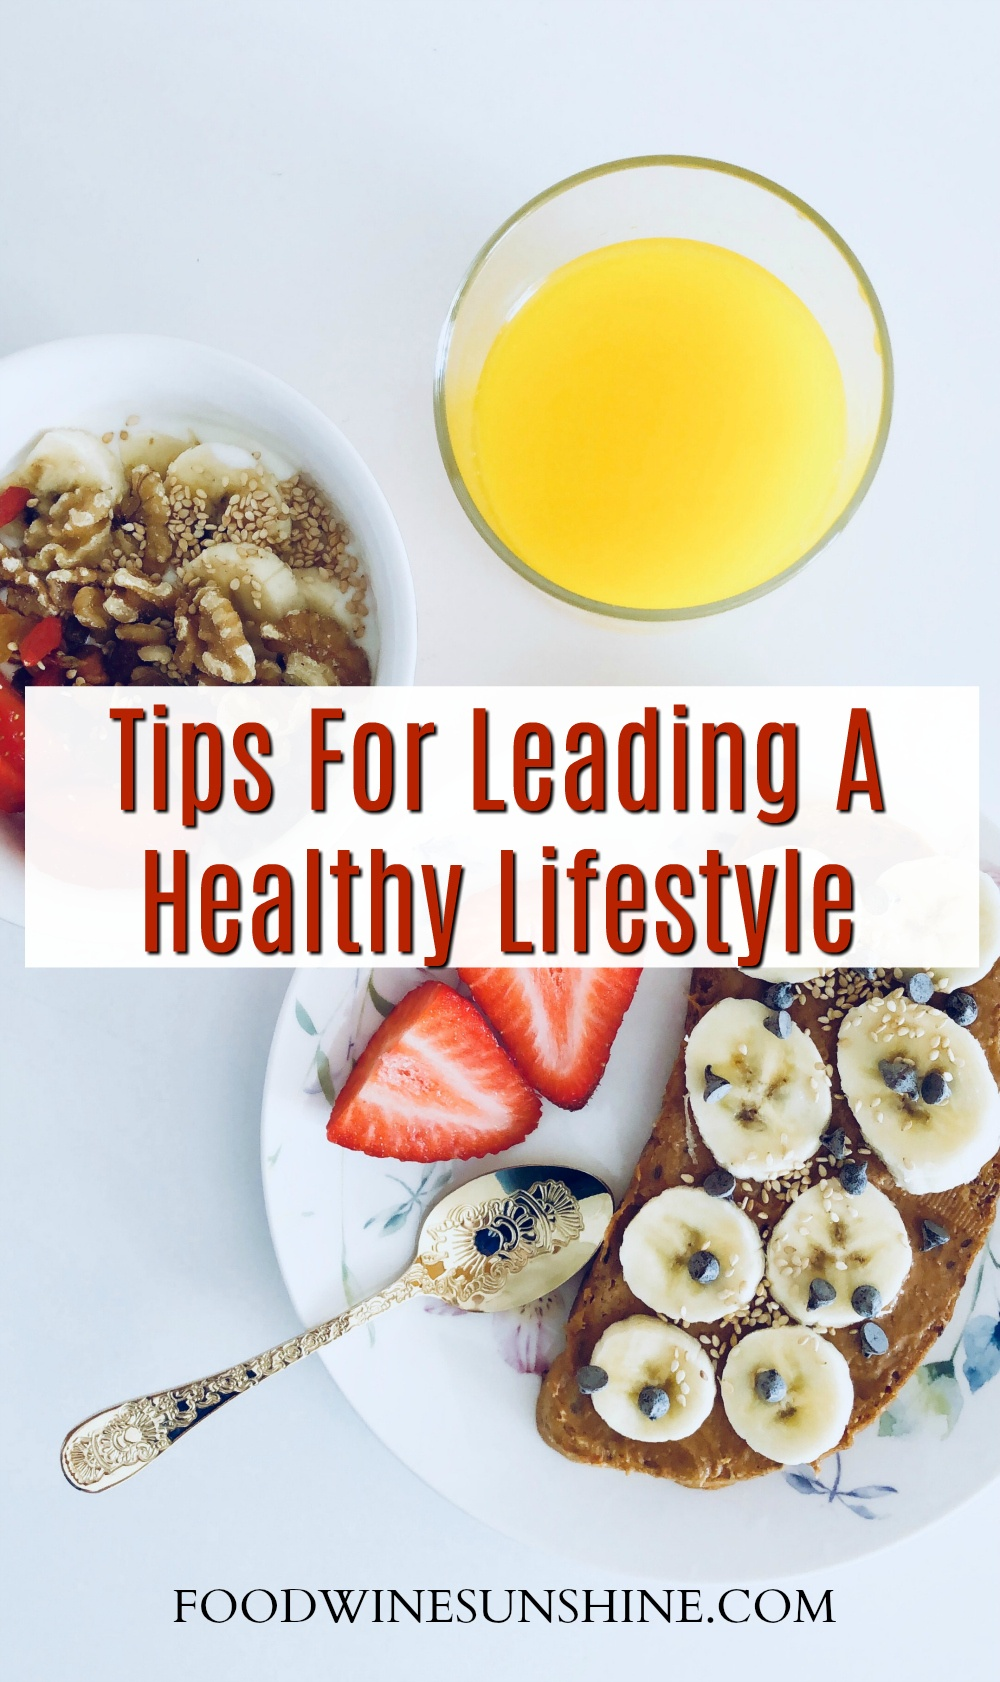 Best Tips For Leading A Healthy Lifestyle